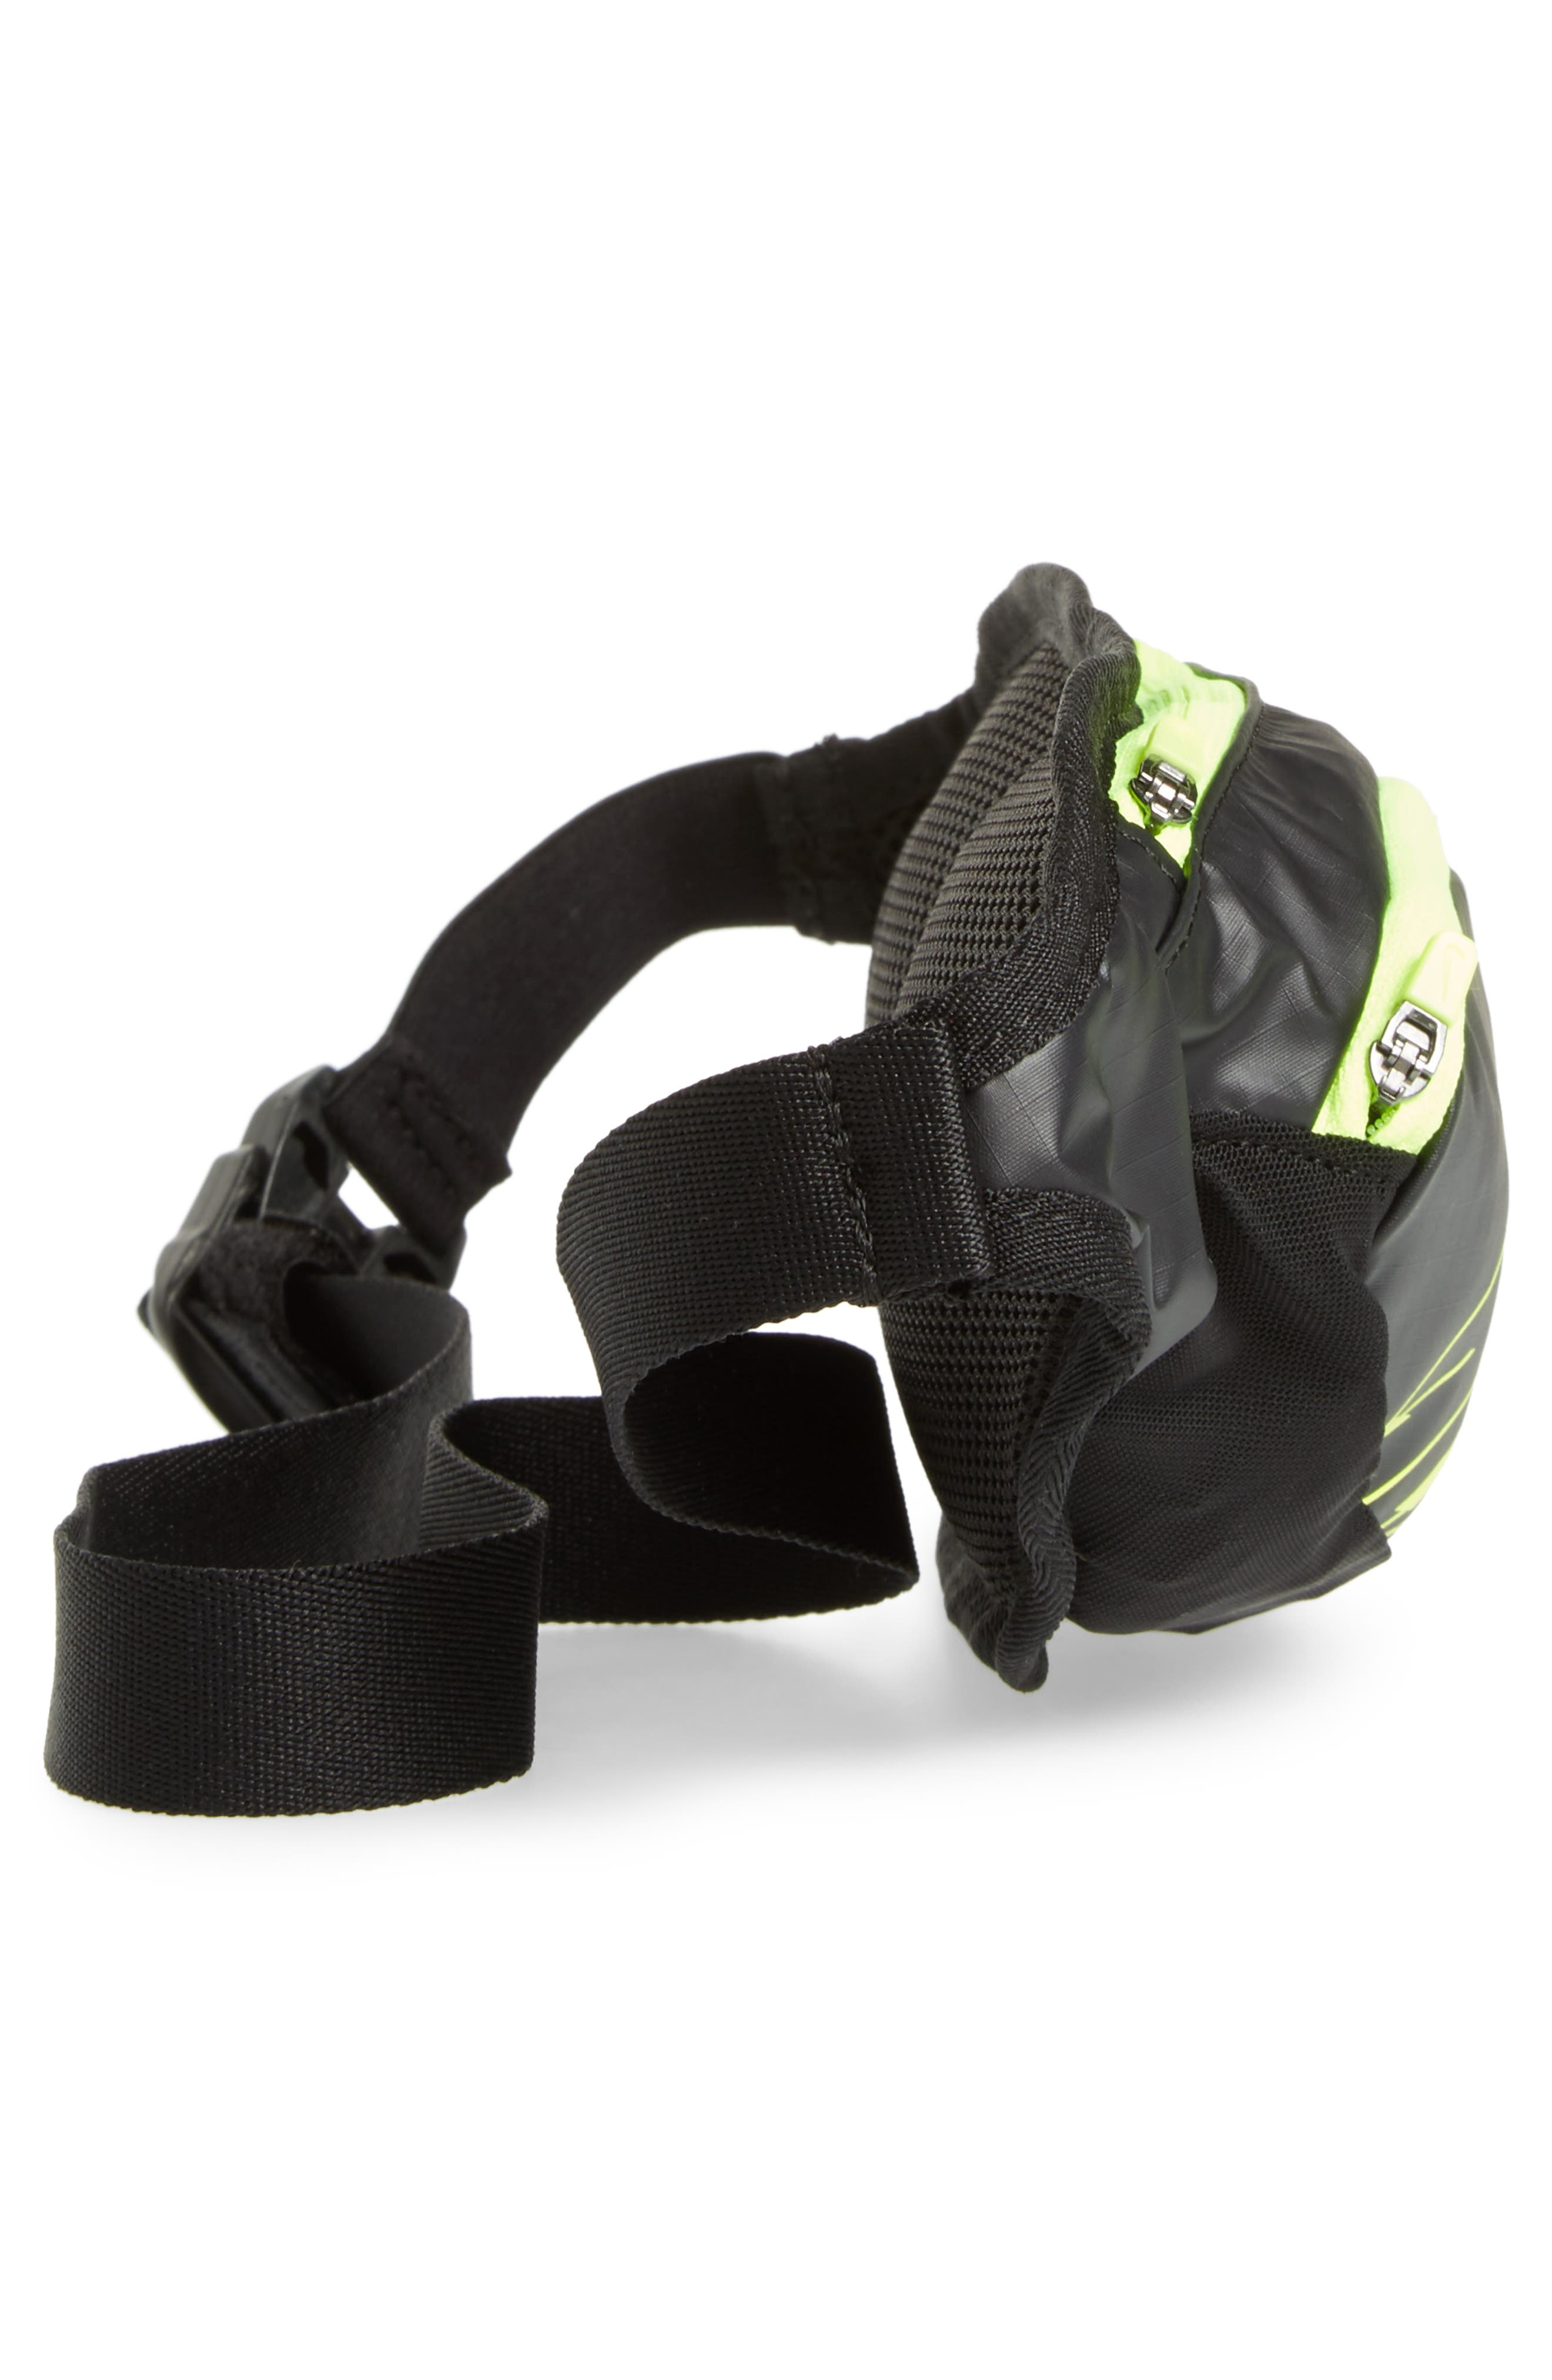 Large Capacity Hip Pack,                             Alternate thumbnail 5, color,                             019